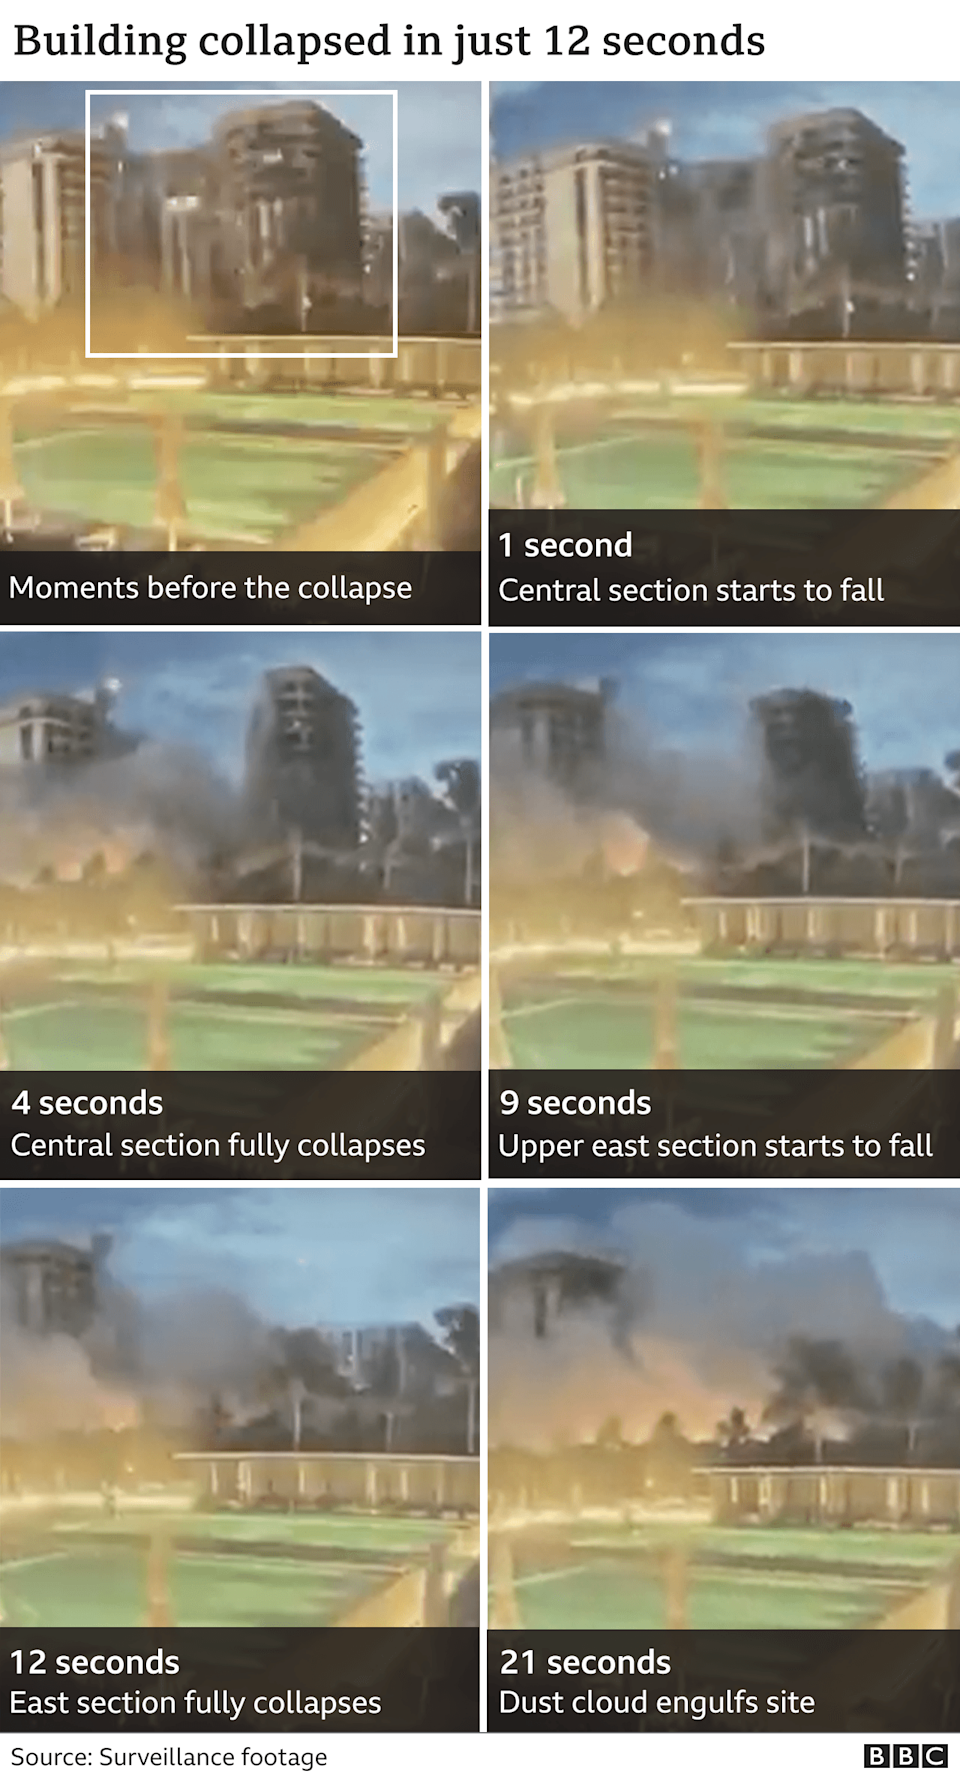 Sequence of images showing the collapse of the building